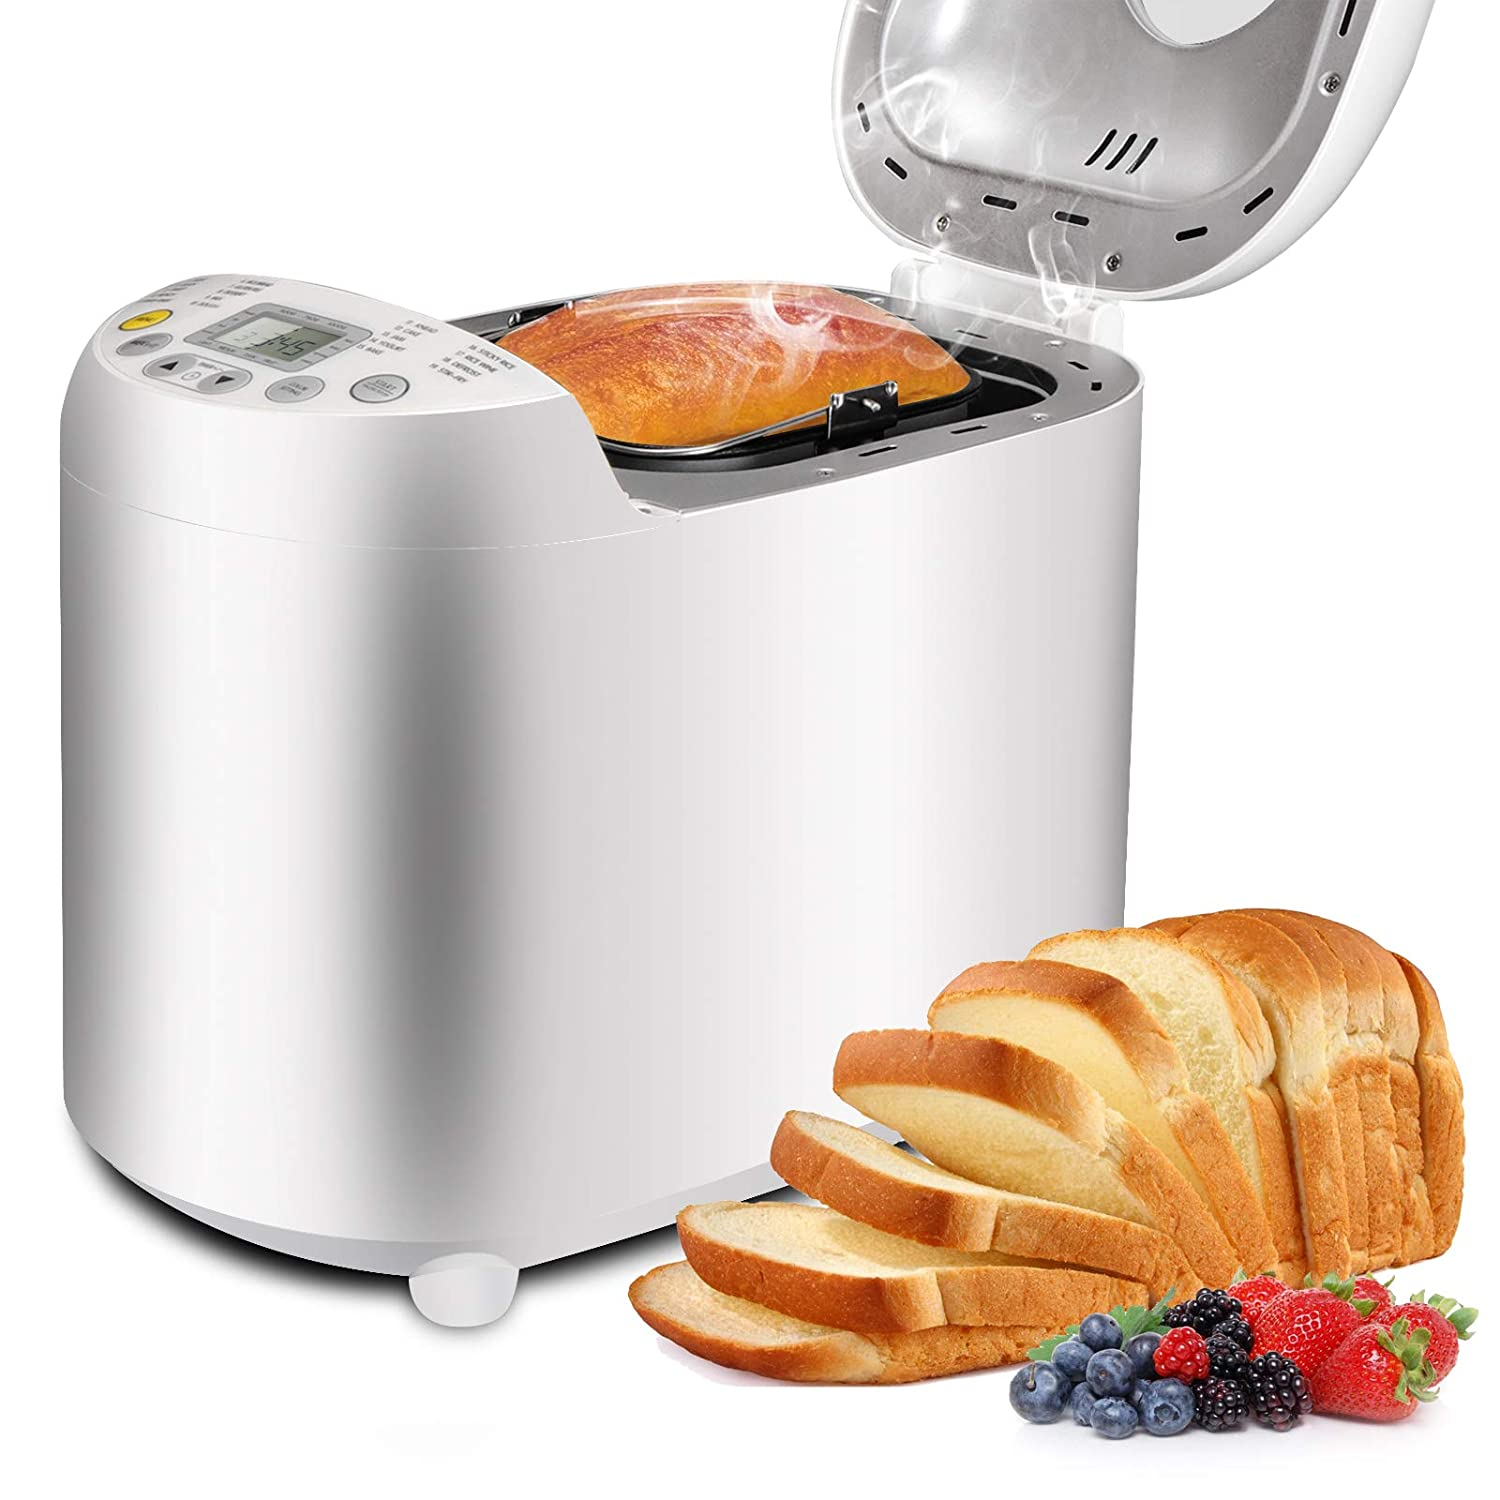 SUPER DEAL Upgraded Breadmaker Full Automatic Stainless Steel Programmable Bread Maker - 19 Baking Functions - 3 Crust Color - 15 Hours Delay Time - PRO LCD Display